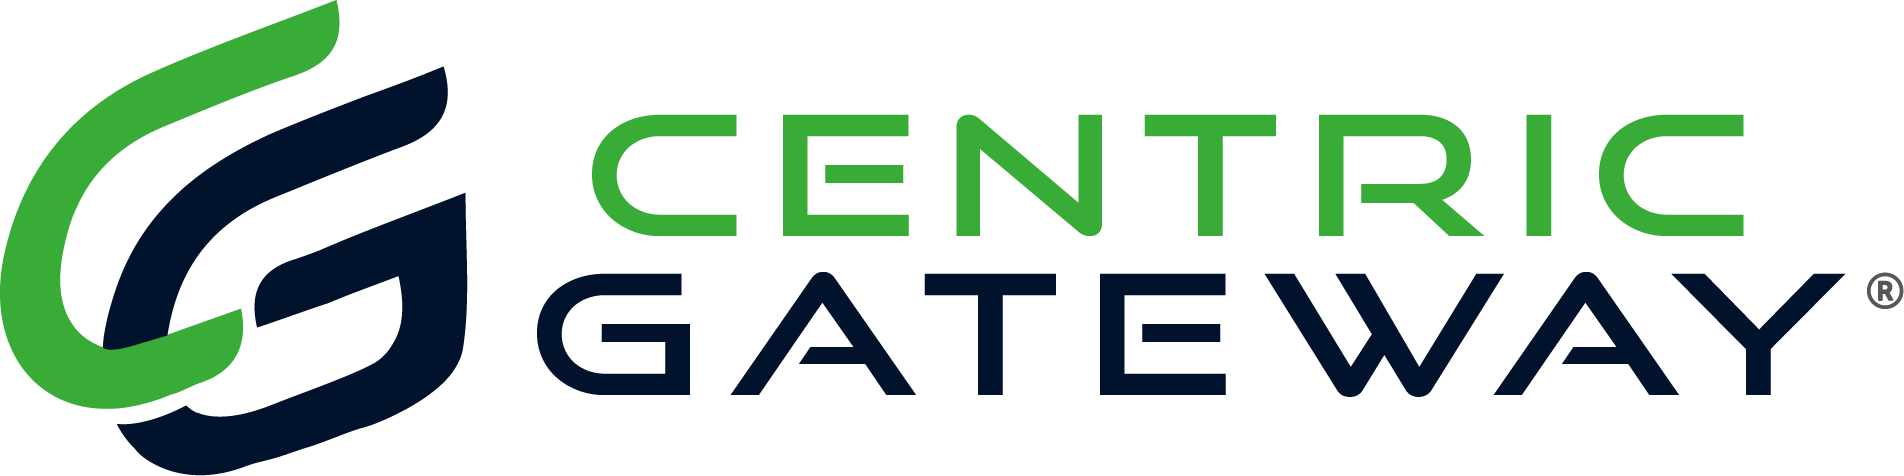 Centric Gateway - The Ultimate Payment Gateway